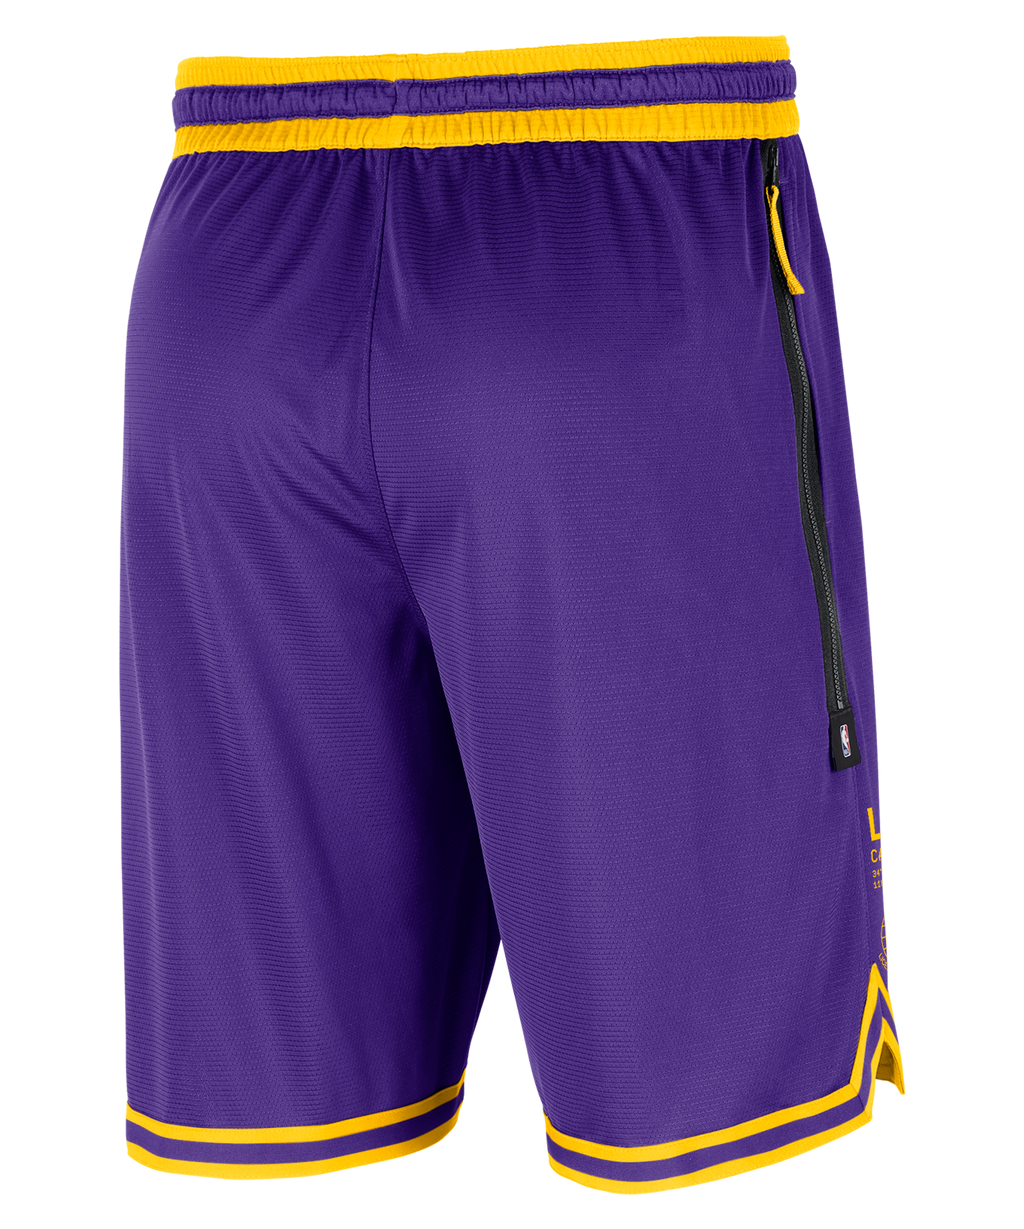 LA Lakers Courtside Nike NBA Shorts